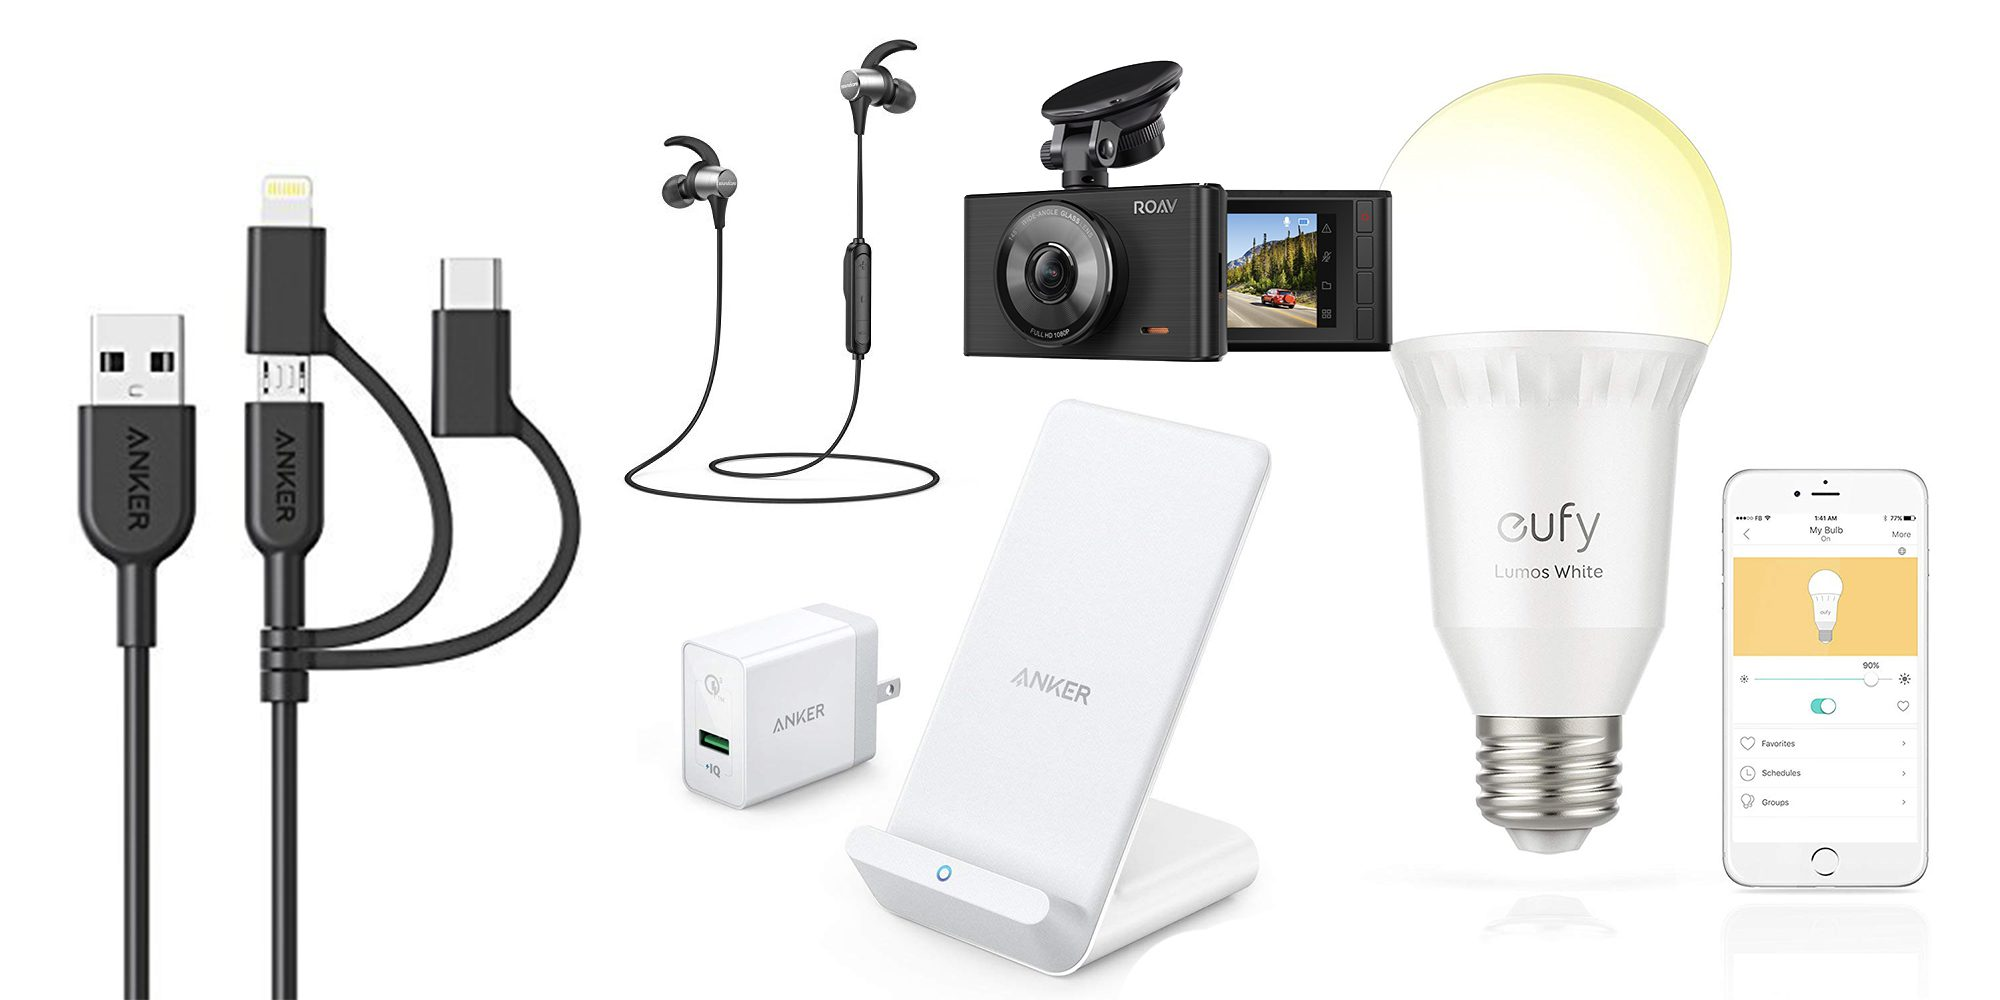 9to5Toys Last Call: ecobee3 Thermostat Bundle $200, Ryze